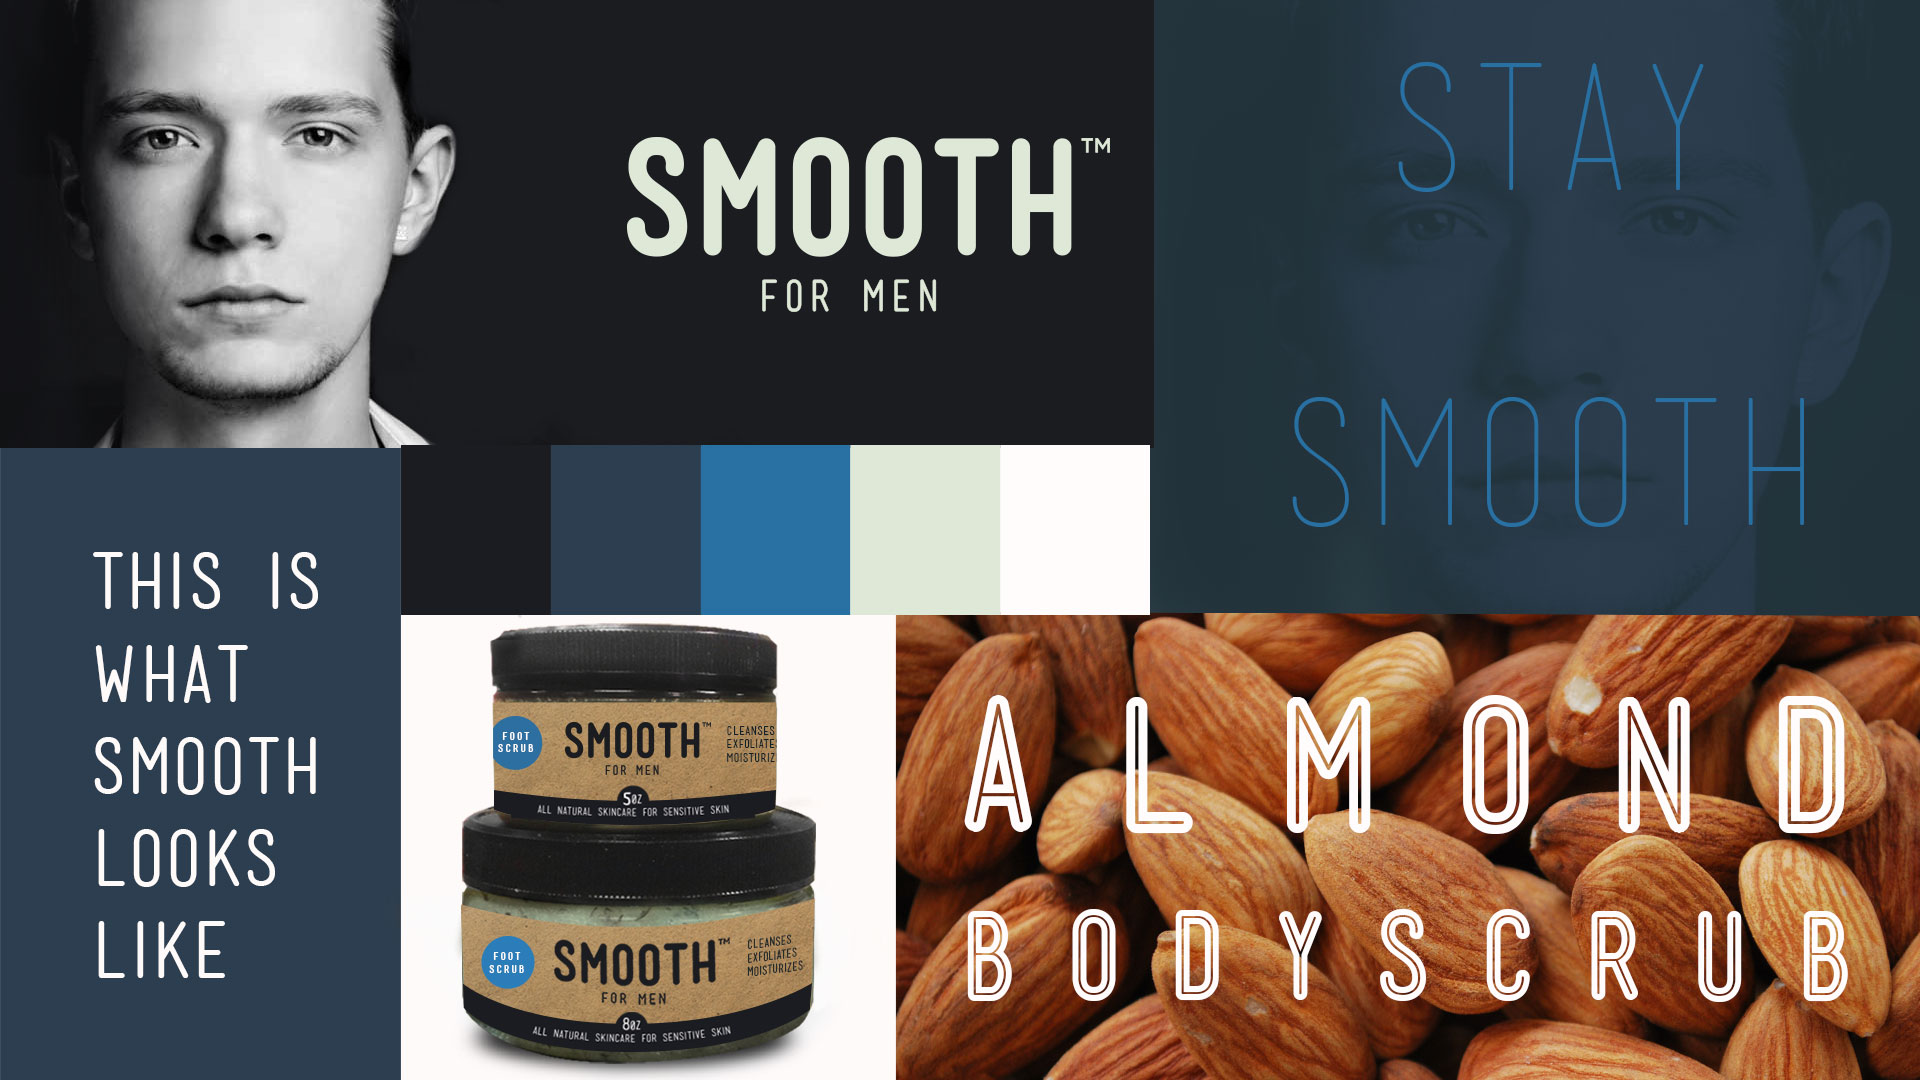 Simple Sugars Smooth For Men mood board